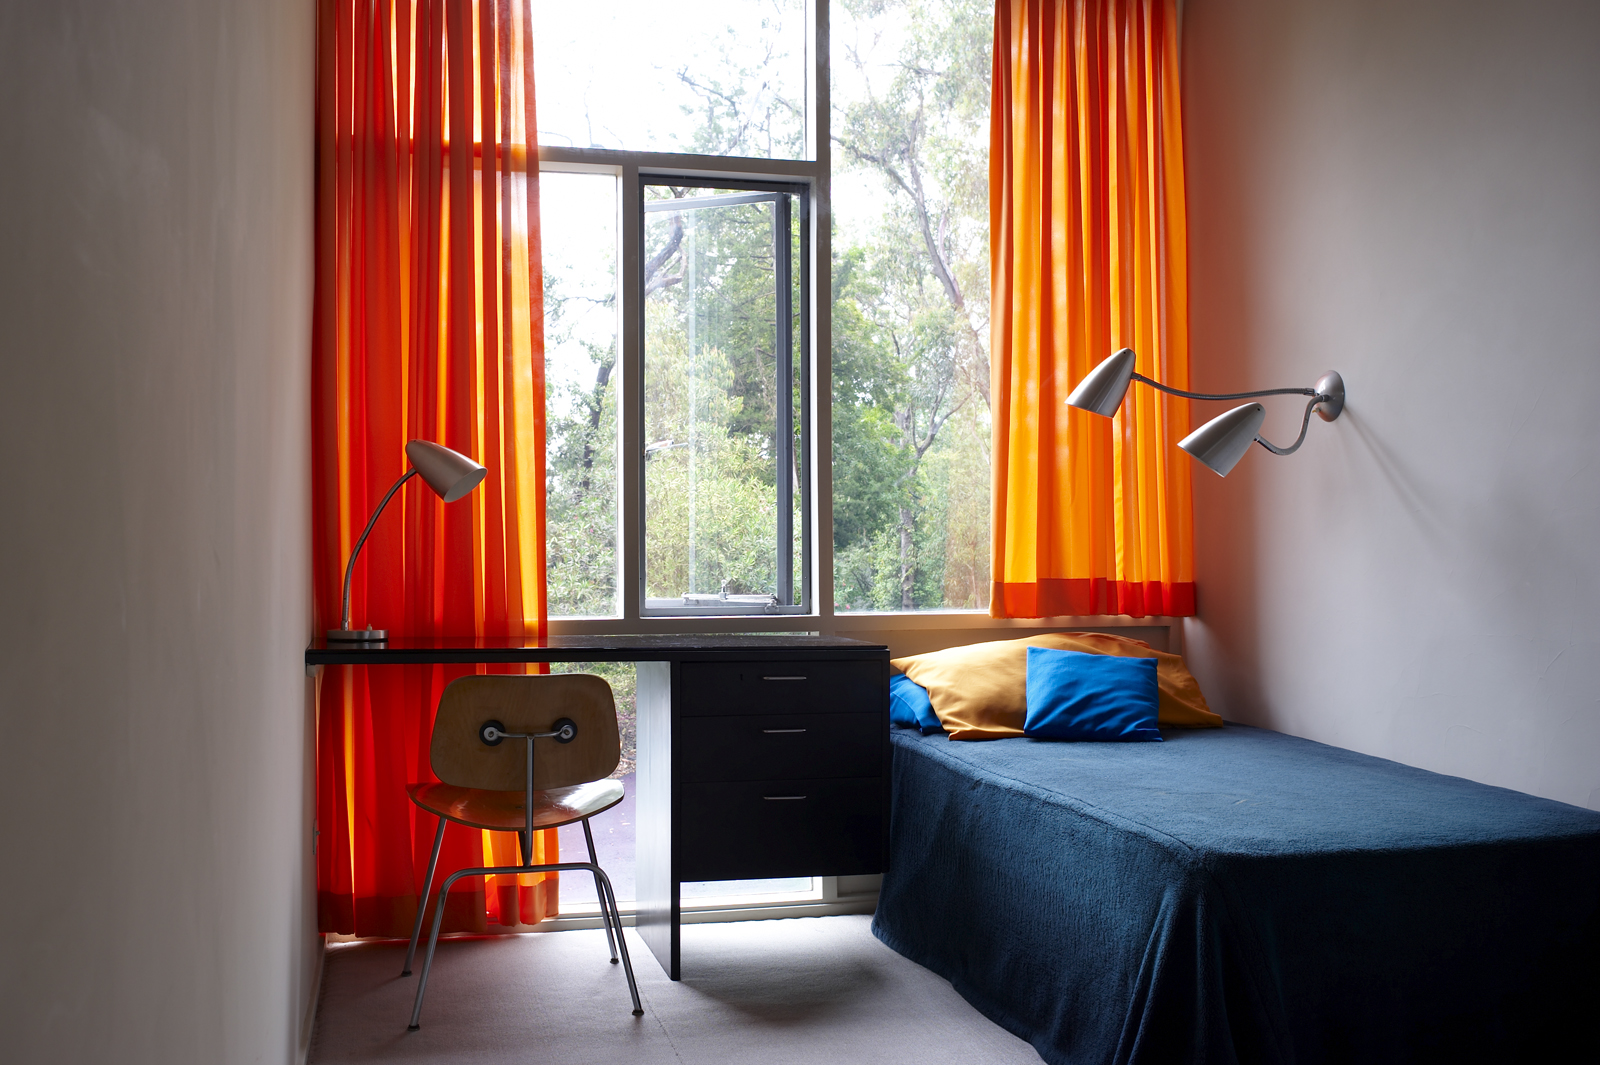 View of child's bedroom, Rose Seidler House, showing desk, chair, lamps, single bed and orange curtains.